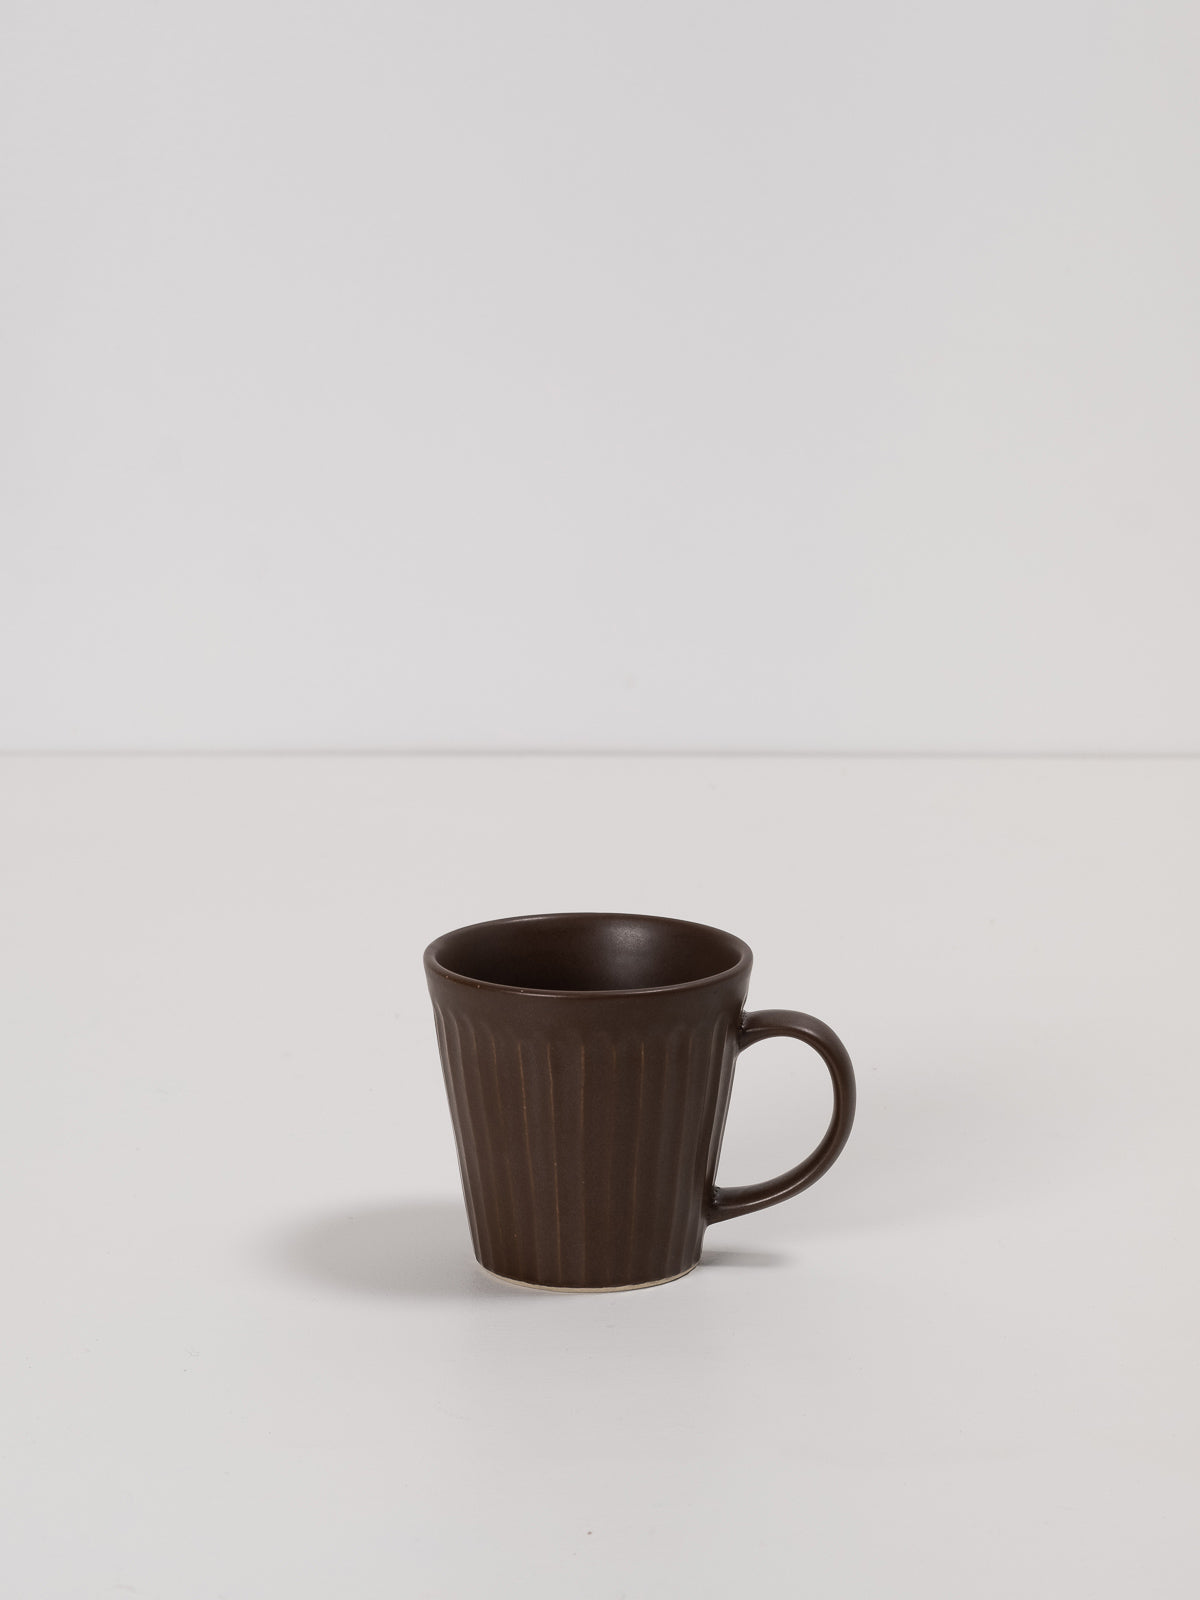 Fluted Cup, Mashiko Pottery